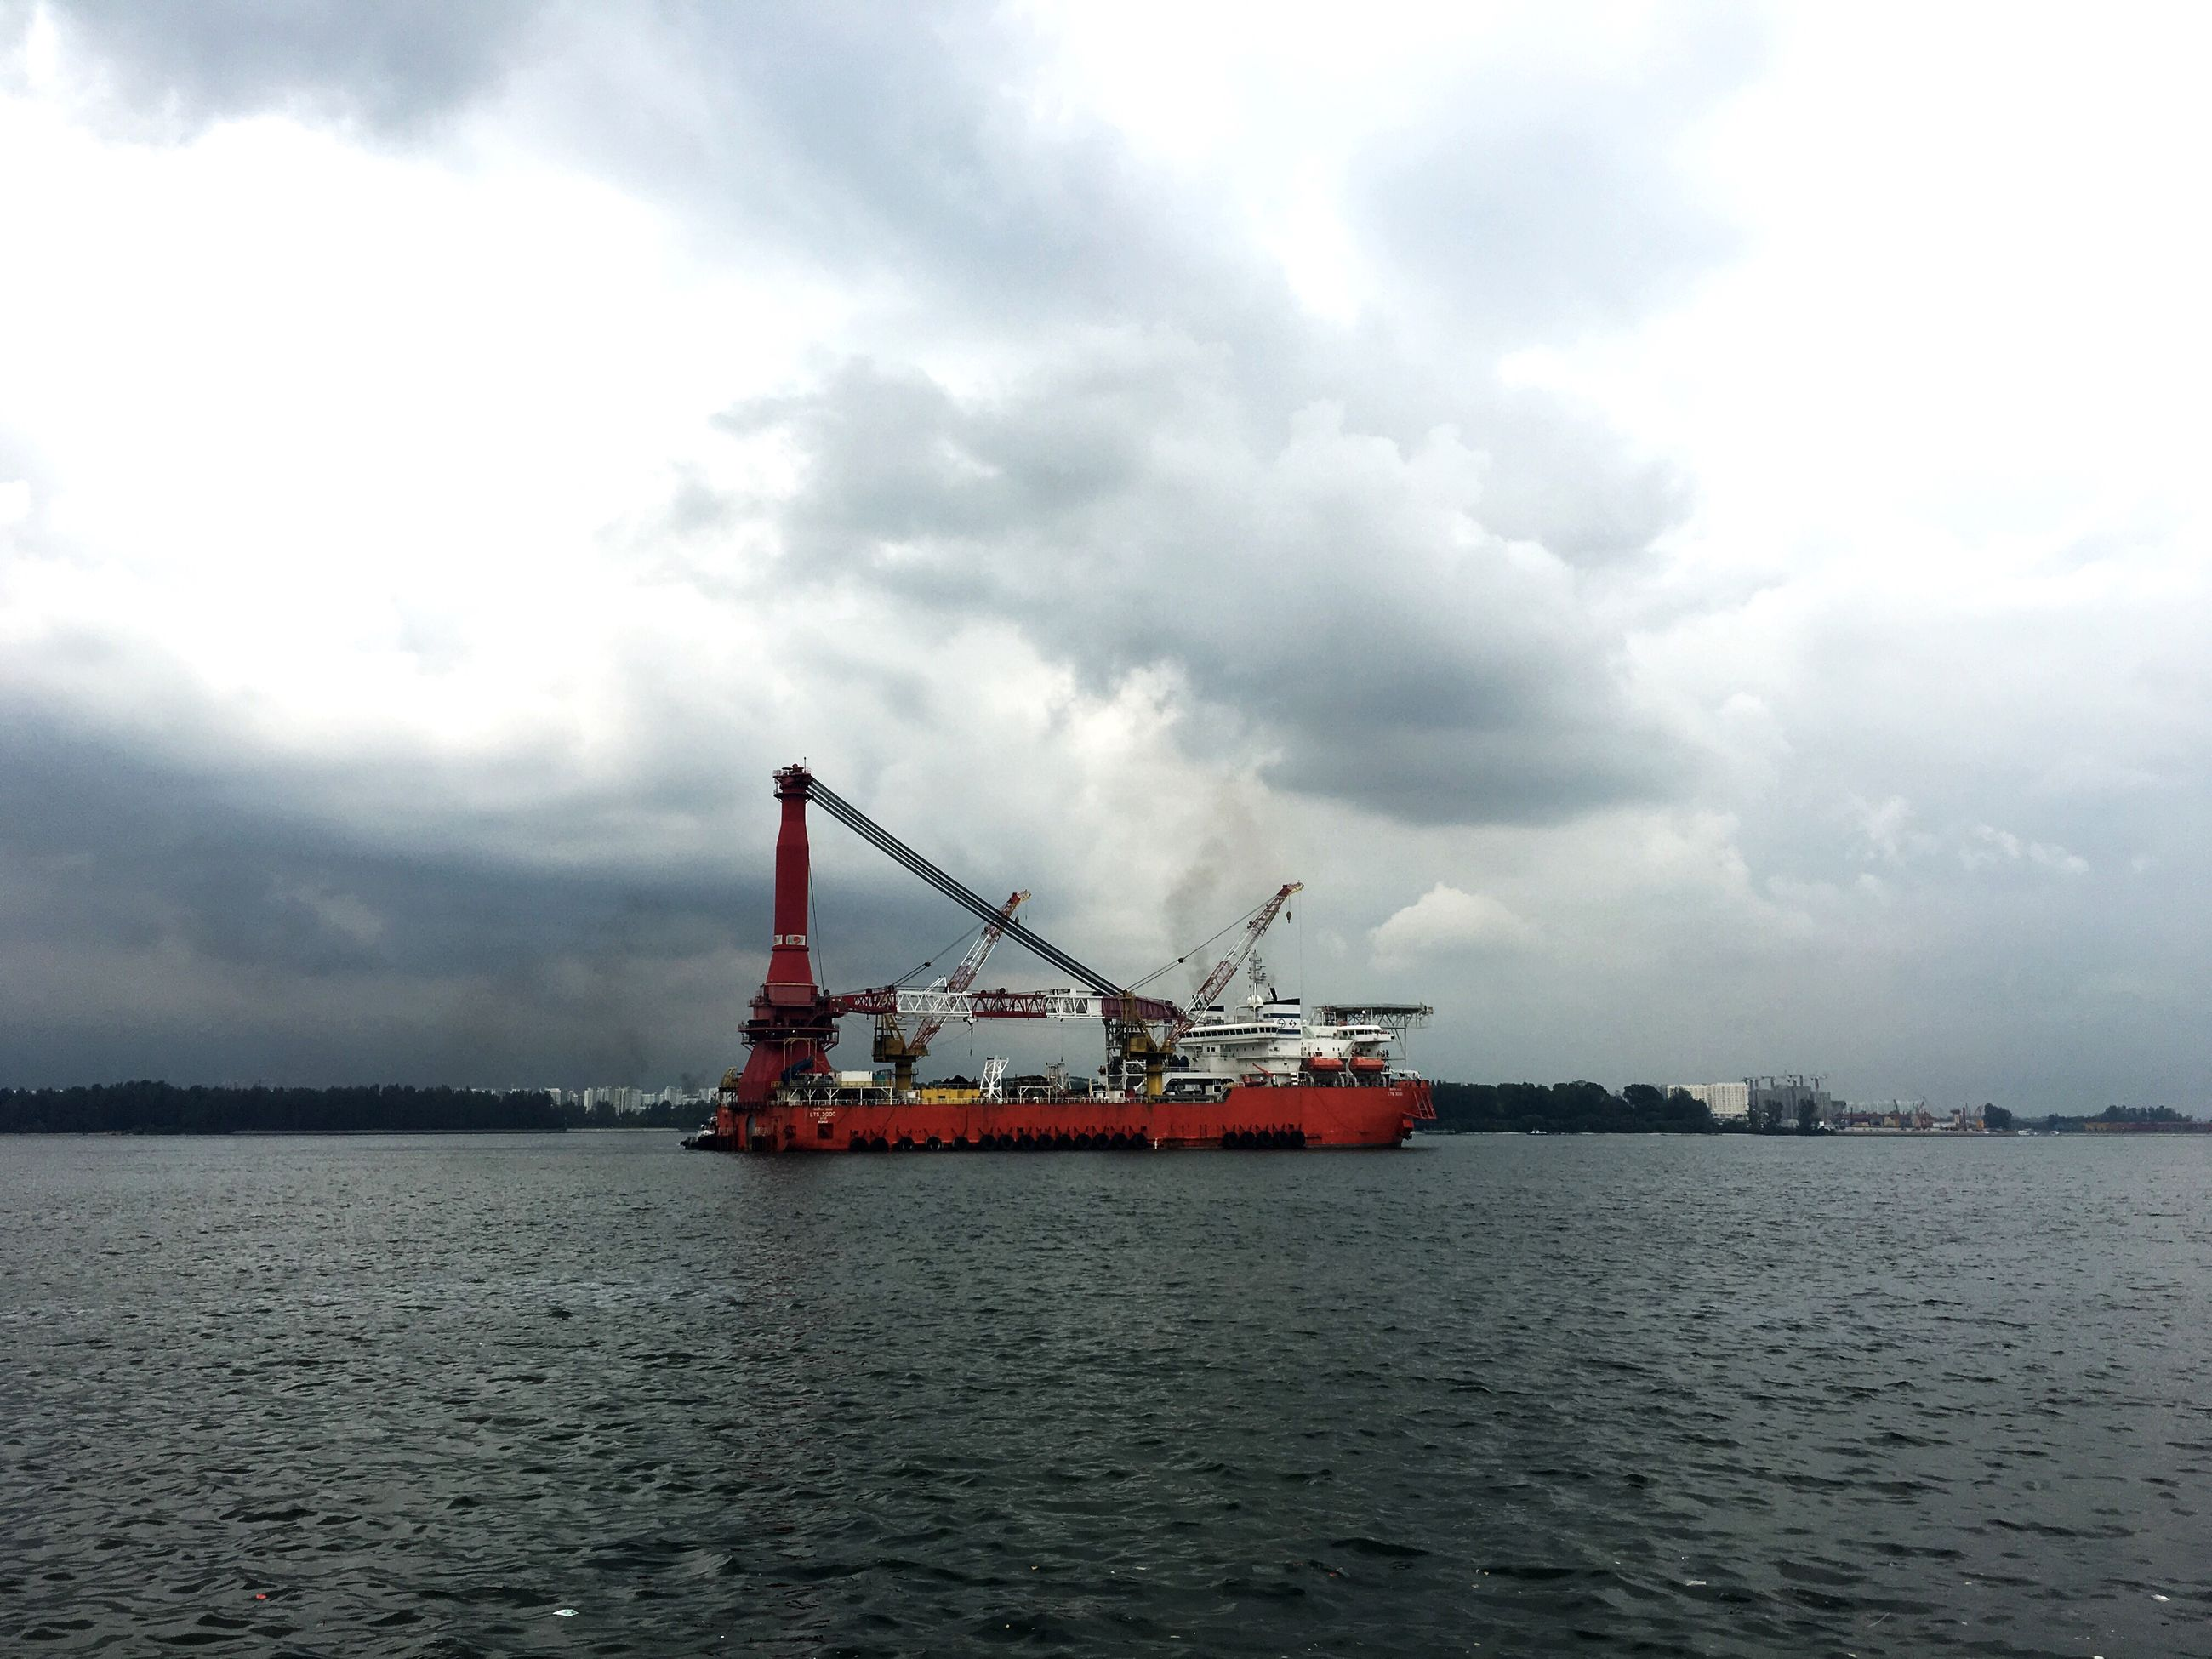 water, waterfront, transportation, sky, sea, nautical vessel, cloud - sky, mode of transport, crane - construction machinery, cloudy, cloud, sailing, cloudscape, nature, tranquil scene, day, industry, scenics, outdoors, shipping, journey, tranquility, no people, development, beauty in nature, commercial dock, moody sky, ocean